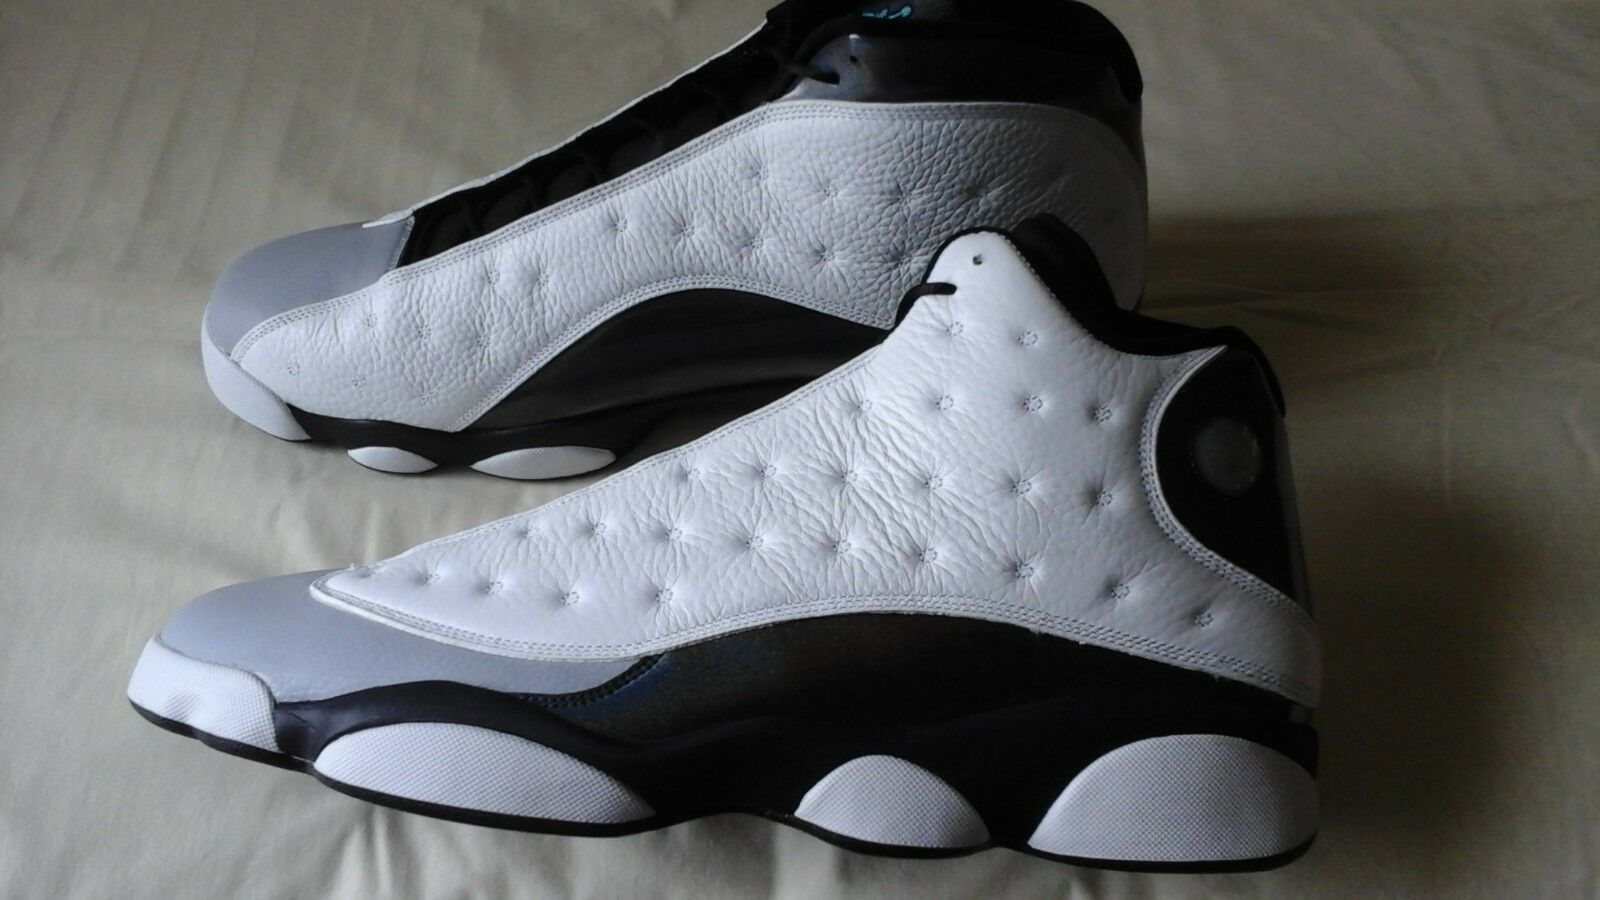 1595e793024ae6 Nike Air Jordan 13 Retro Barons Halogram White Black 414571-115 414571-115  414571